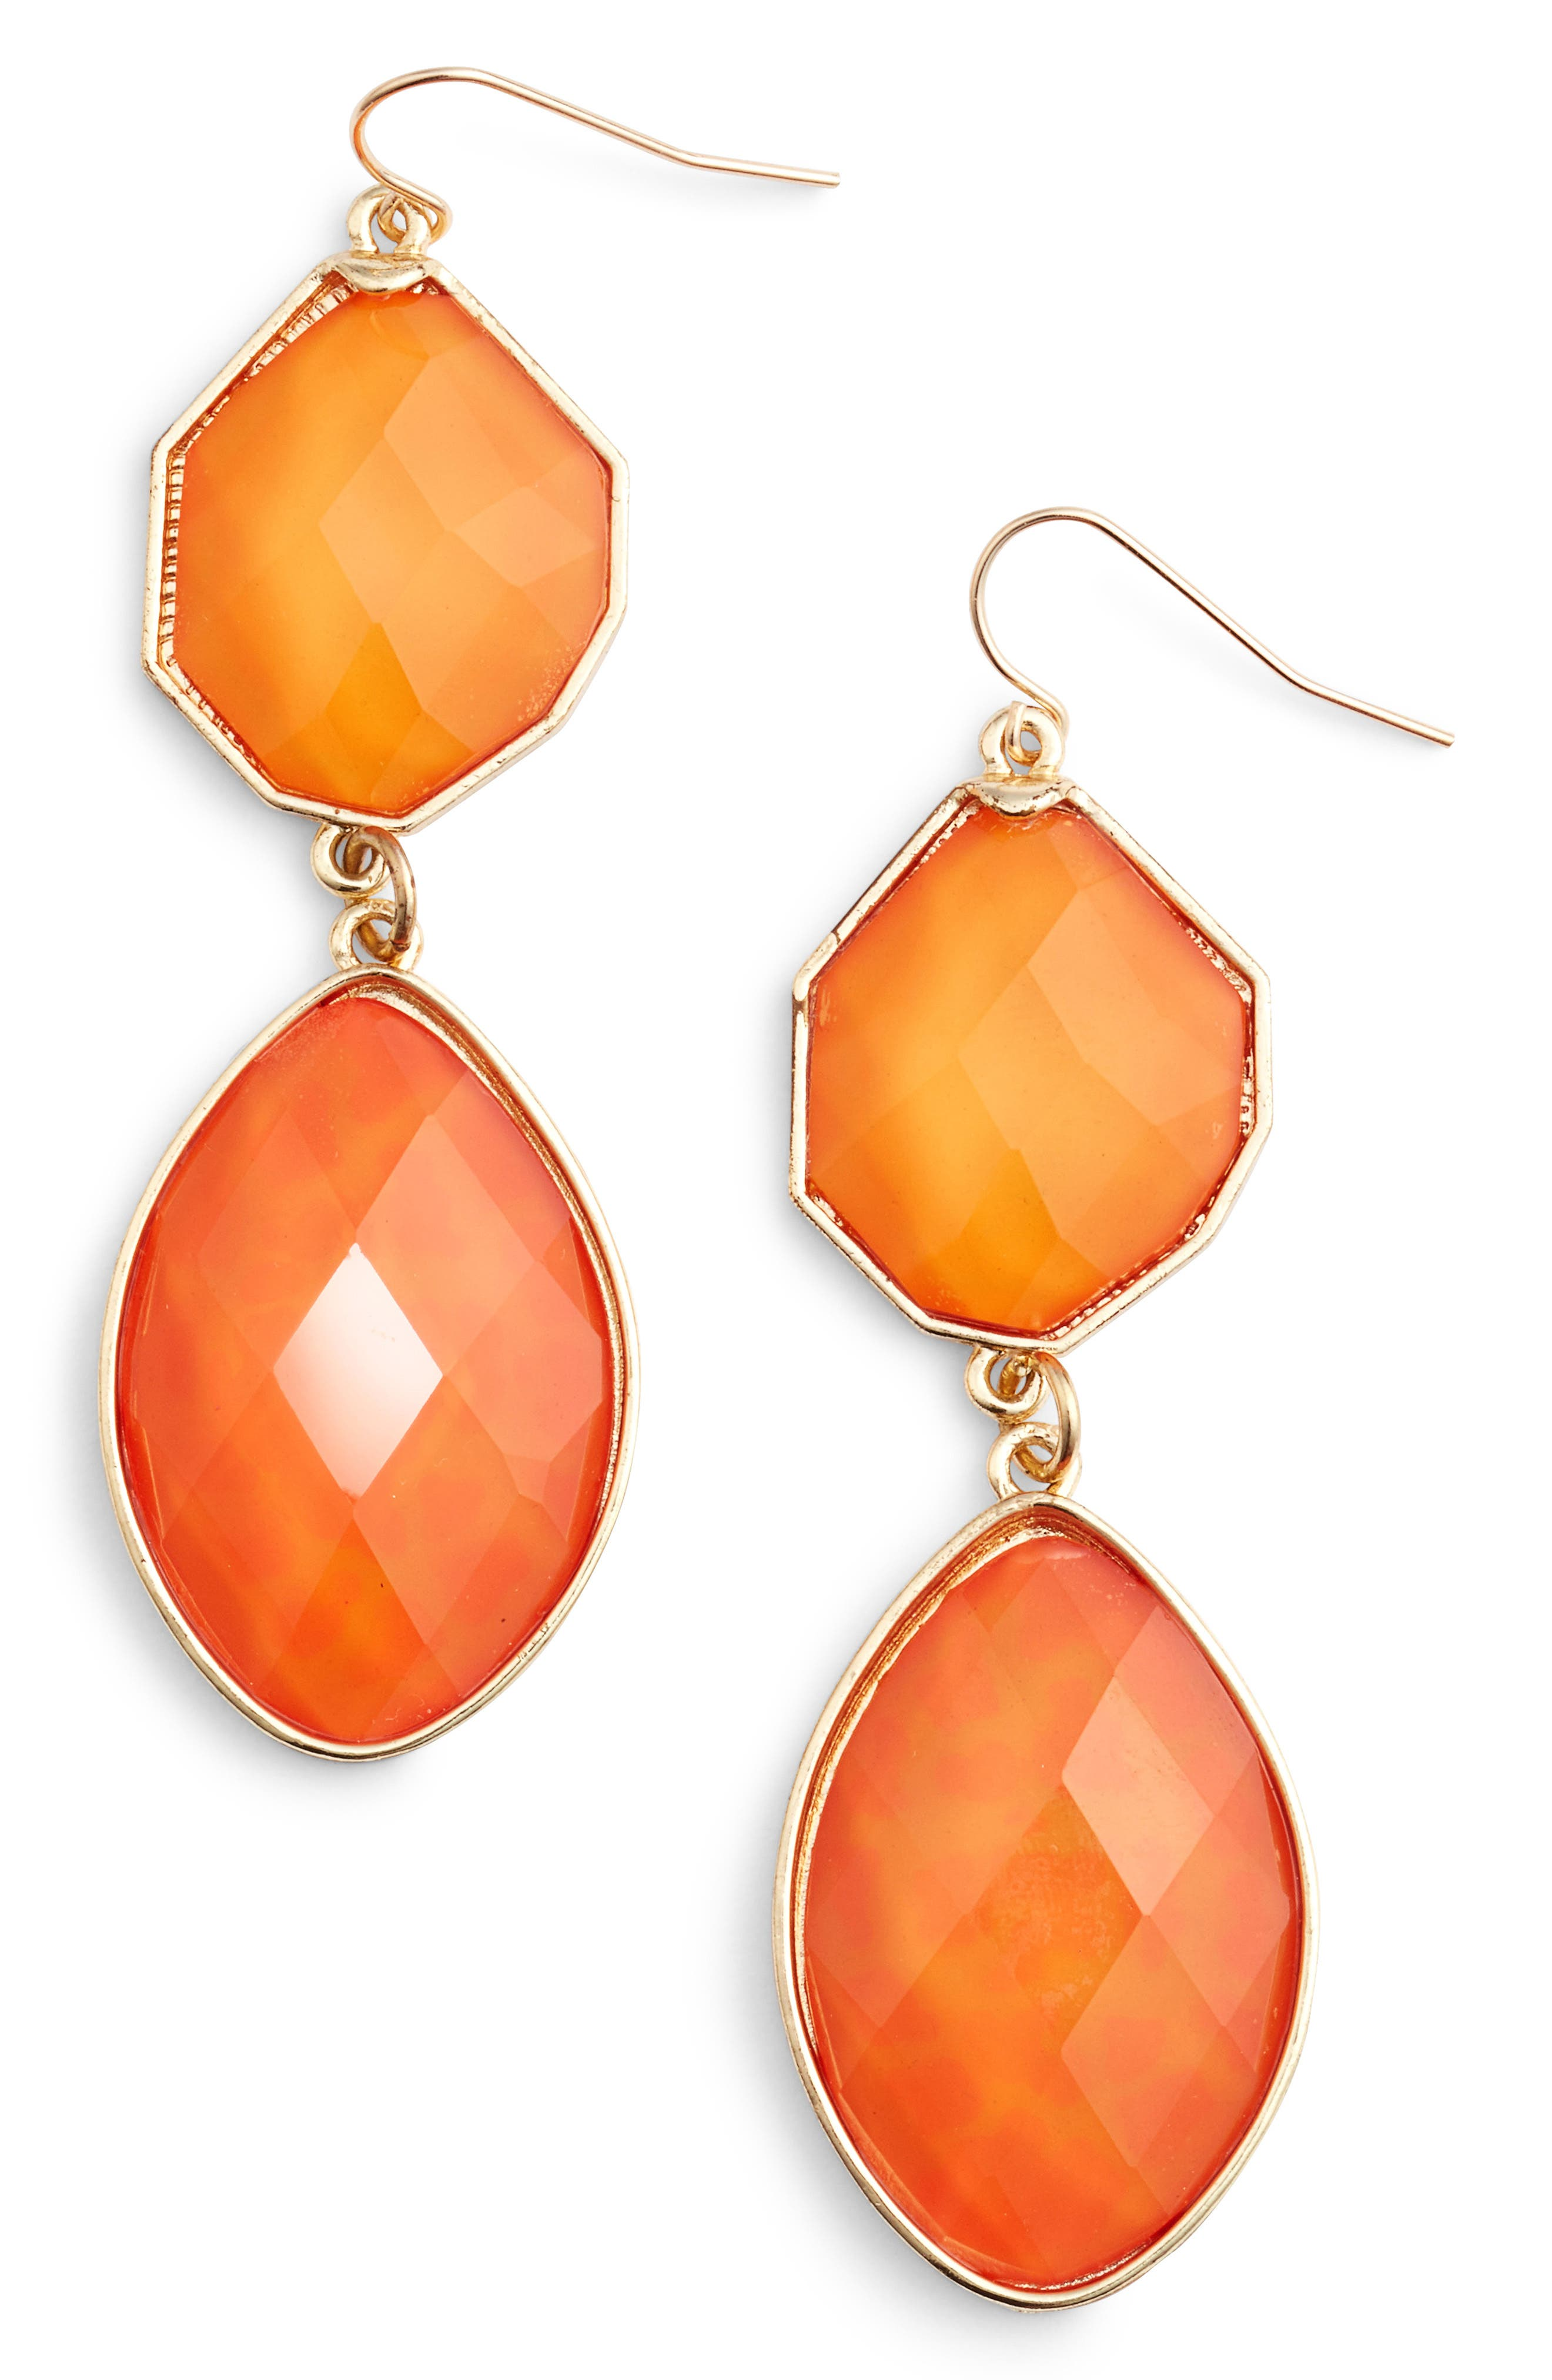 ADIA KIBUR Stone Drop Earrings in Orange/ Peach